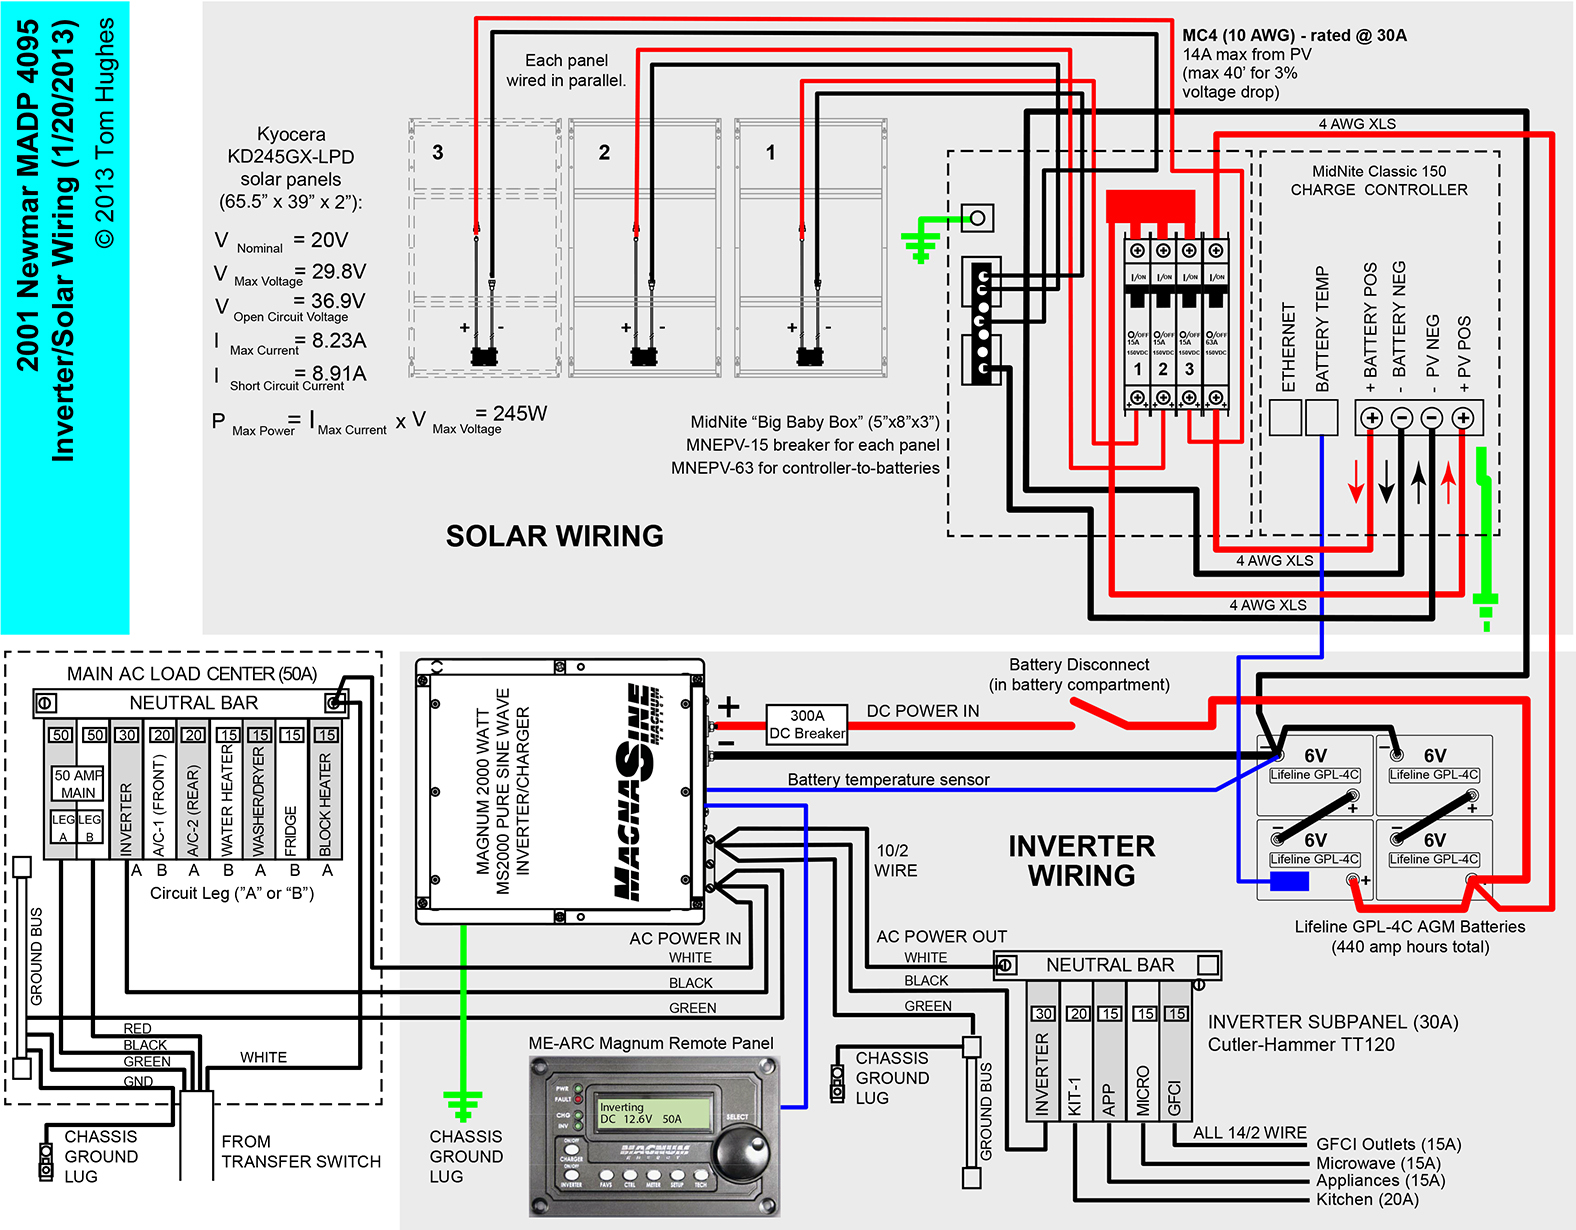 wiring diagram schematics for rv solar with House Wiring Diagram With Inverter 21 on Rv Electrical System Diagram as well House Wiring Diagram With Inverter 21 together with Portable Solar Power Inverter likewise Miller Welder Generator Wiring Diagram moreover Solar inverter.